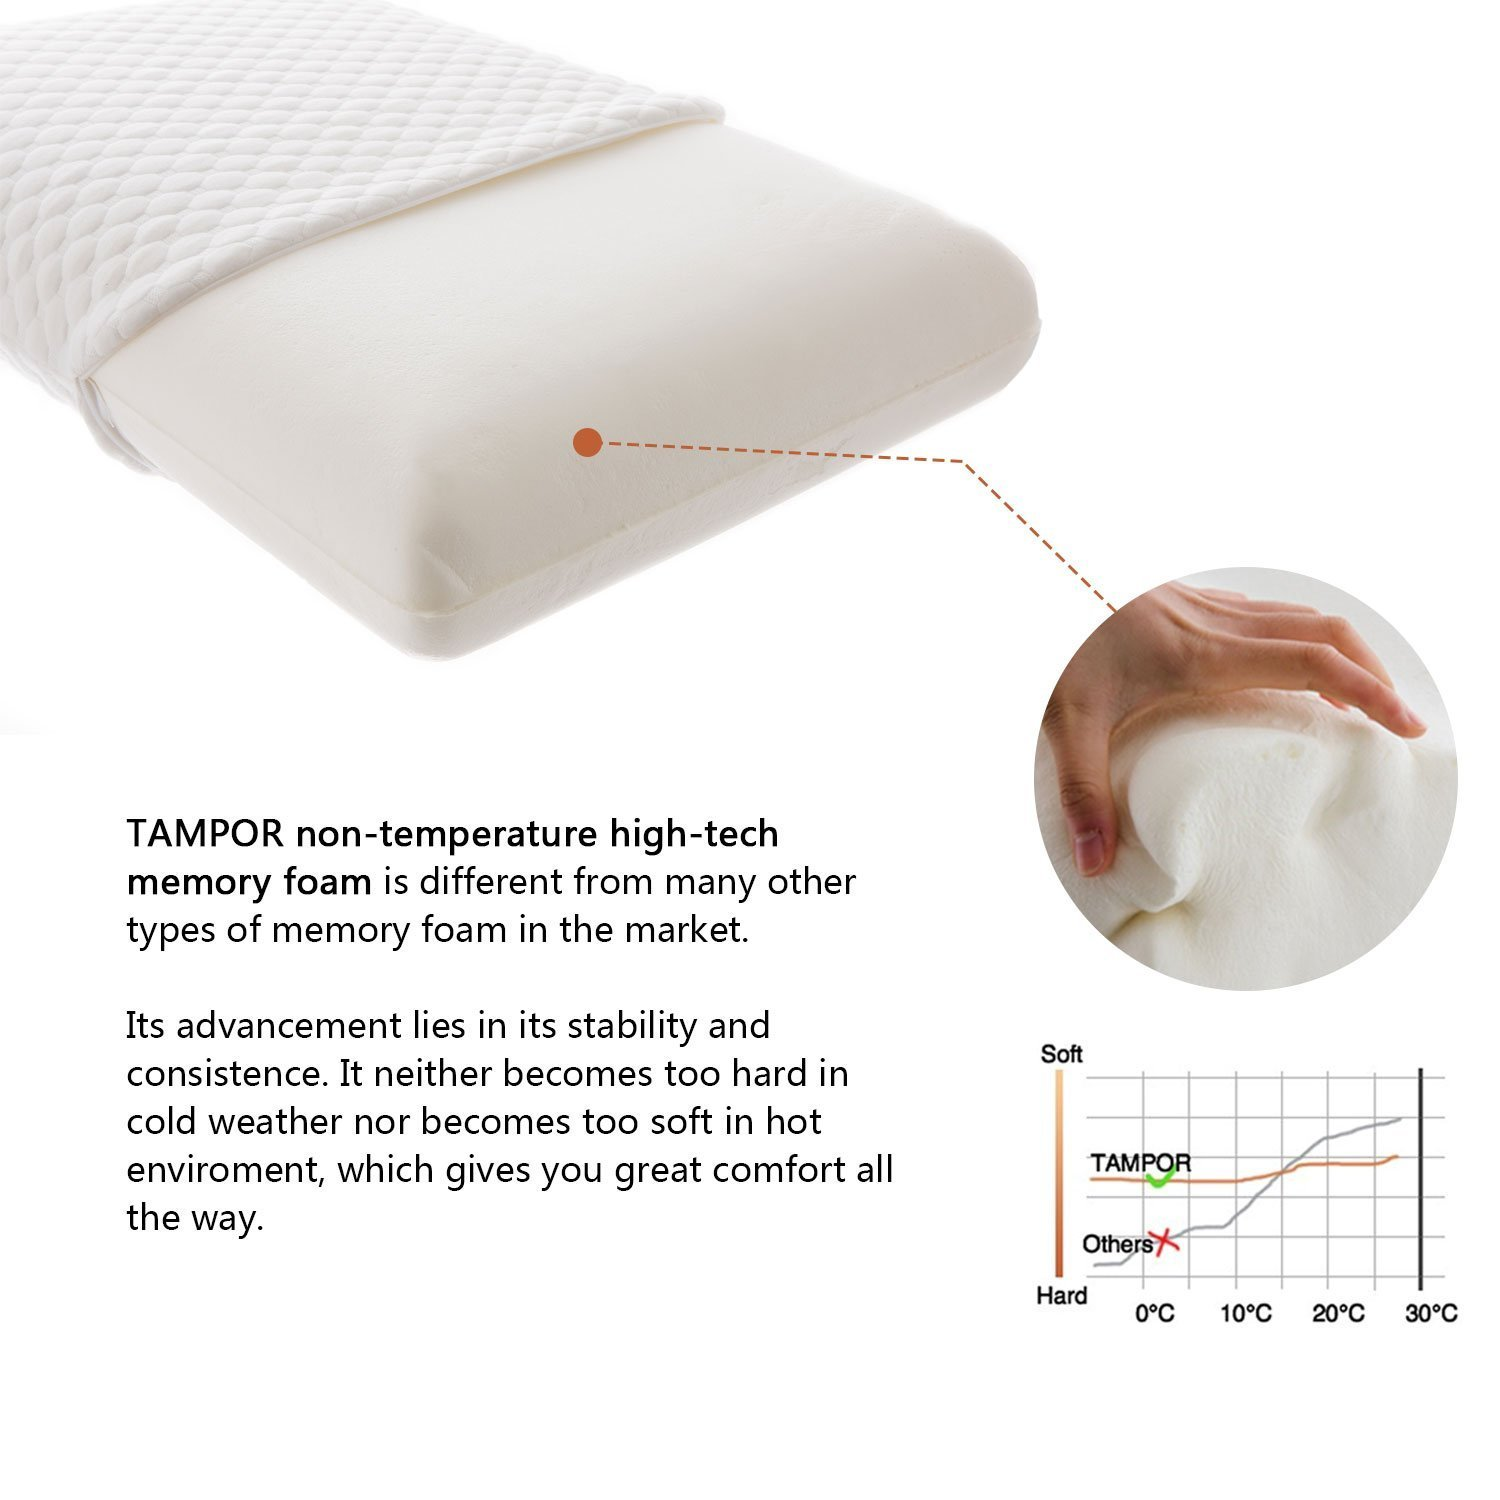 TAMPOR Memory Foam Pillow Premium Bed Pillows for Neck Support Hypoallergenic Neck Pillow for Sleeping with Removable Pillow Cover, for Back & Side Sleepers, Standard by TAMPOR (Image #2)